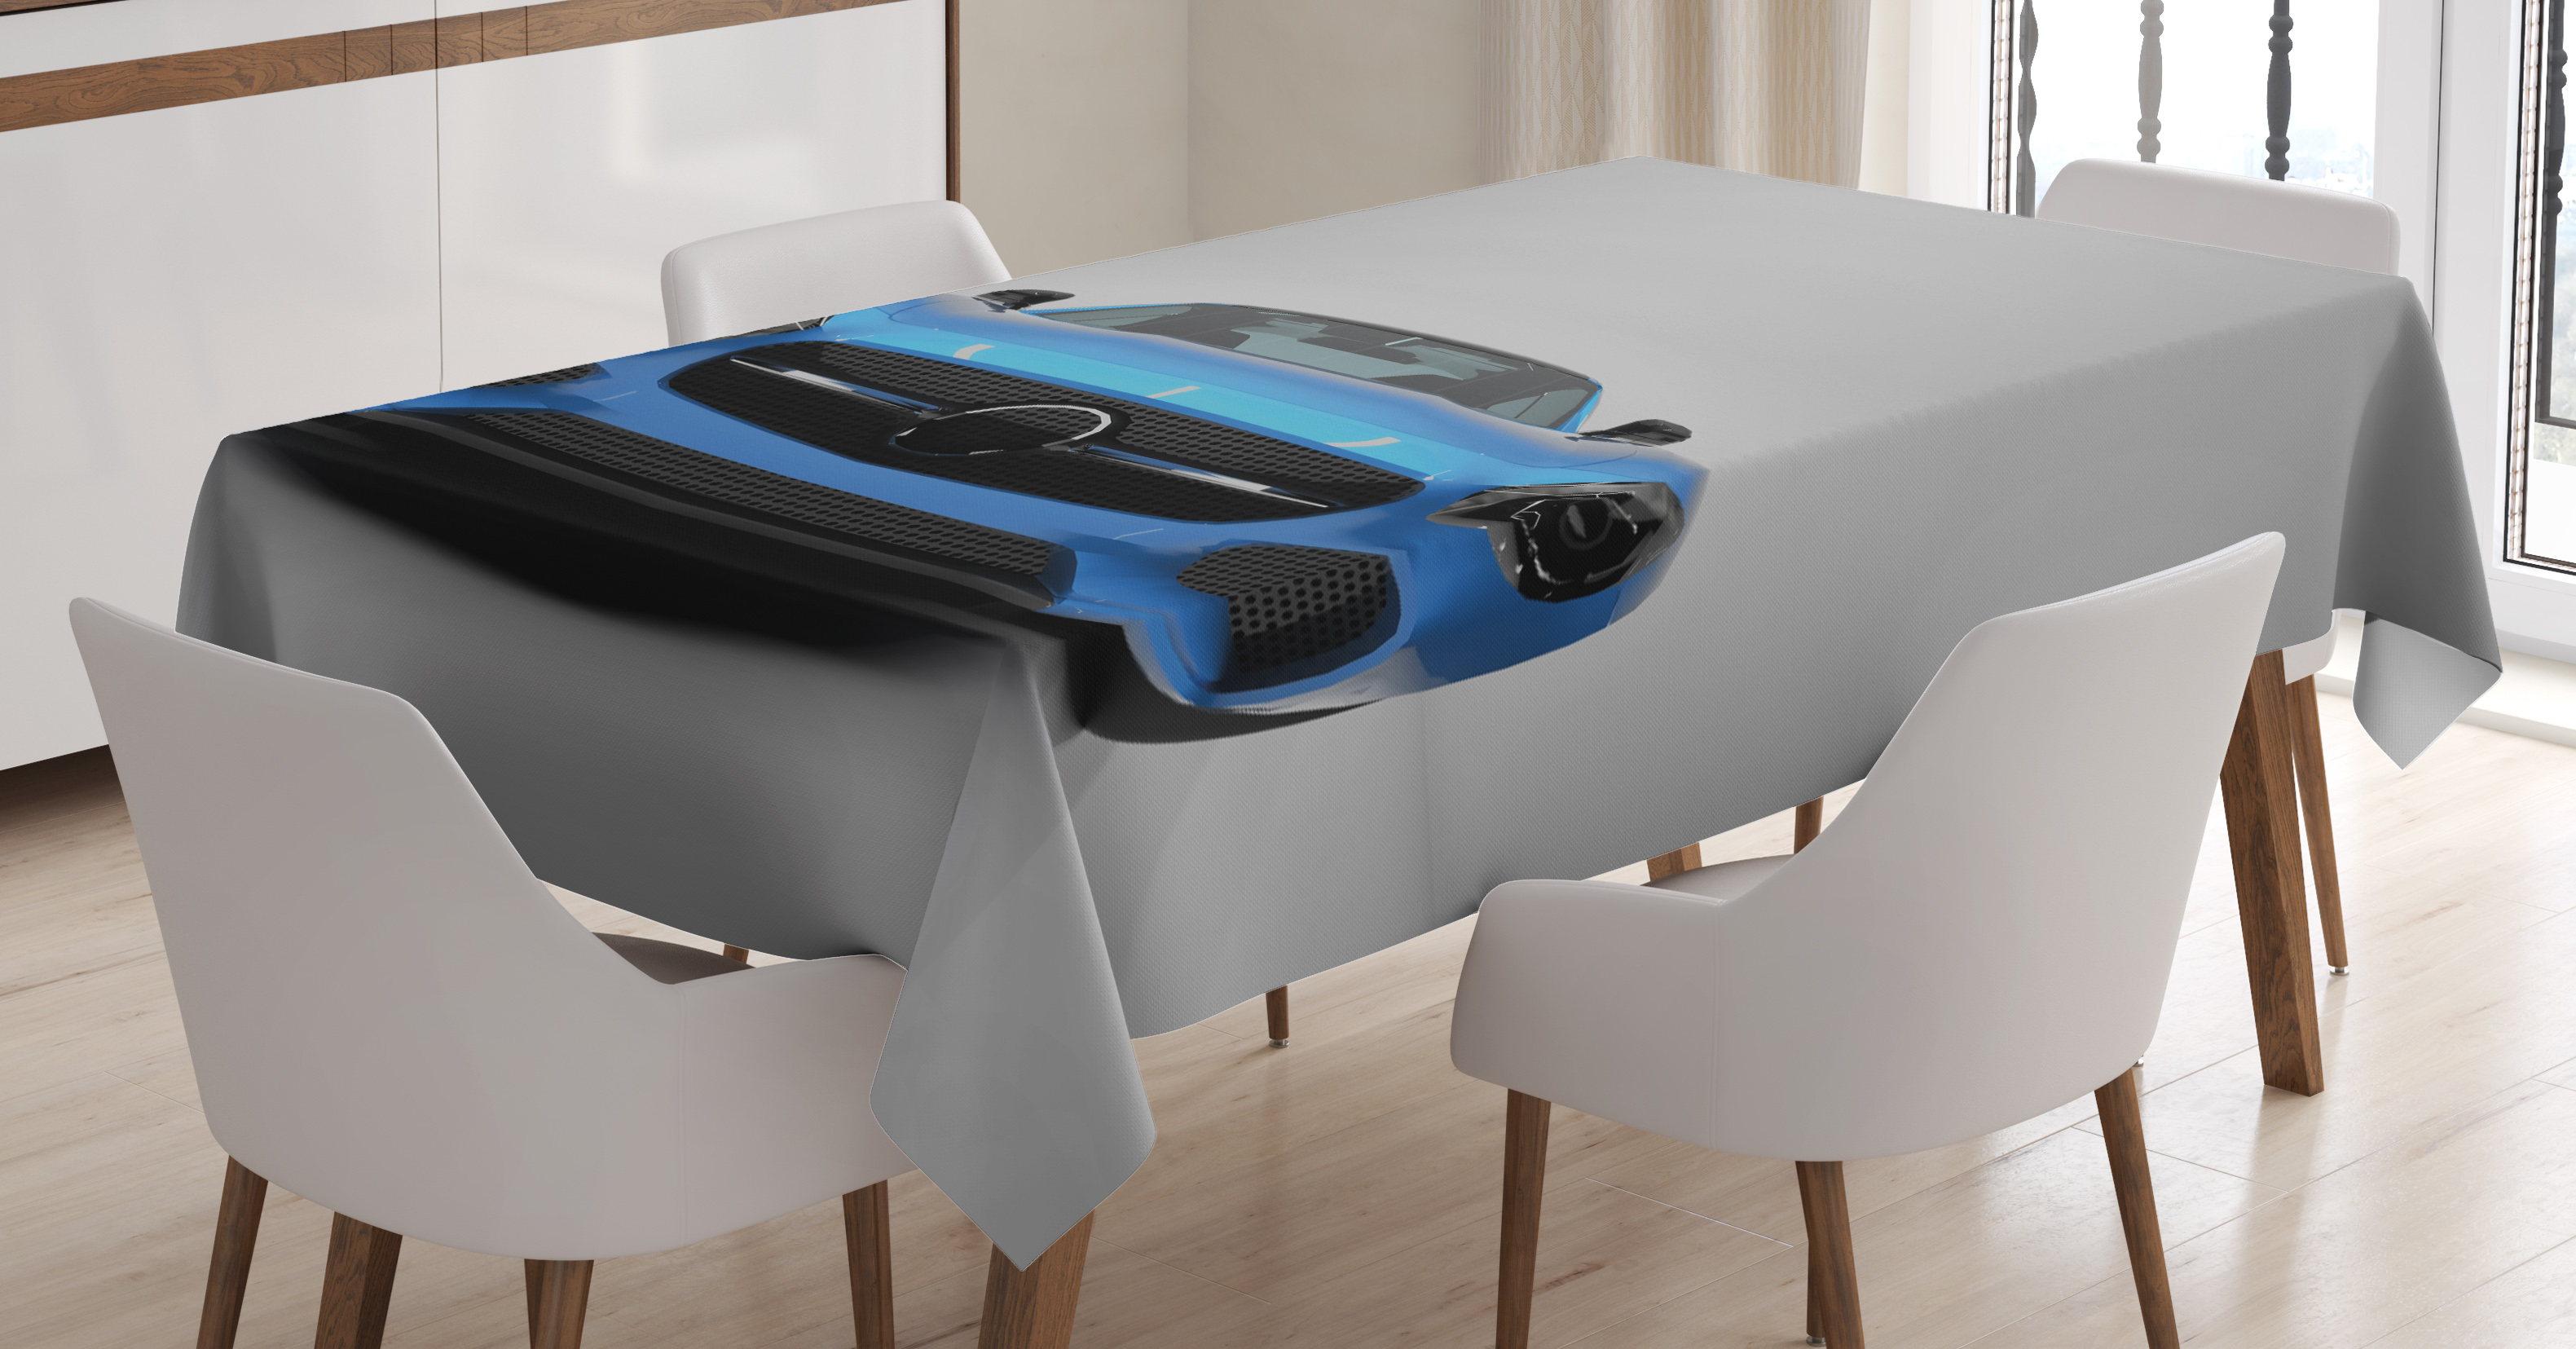 superb Walmart Black Tablecloth Part - 16: Teen Room Decor Tablecloth, Sports Car Luxury Symbol for Men Trendy Stylish  Speed Vehicle Image